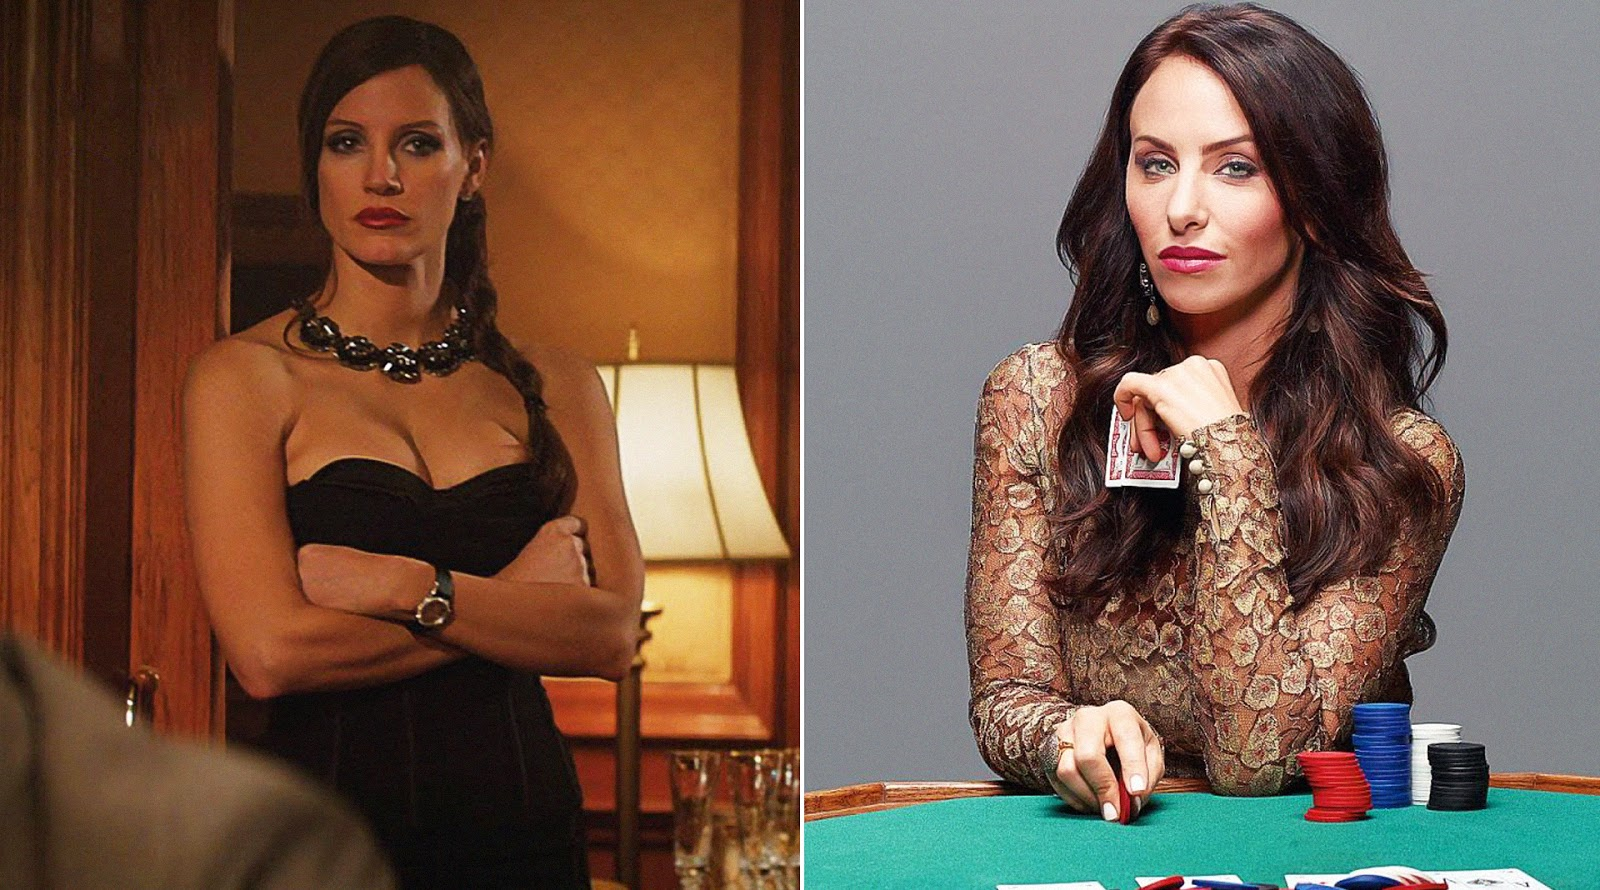 Film Review: MOLLY'S GAME (directed by Aaron Sorkin)